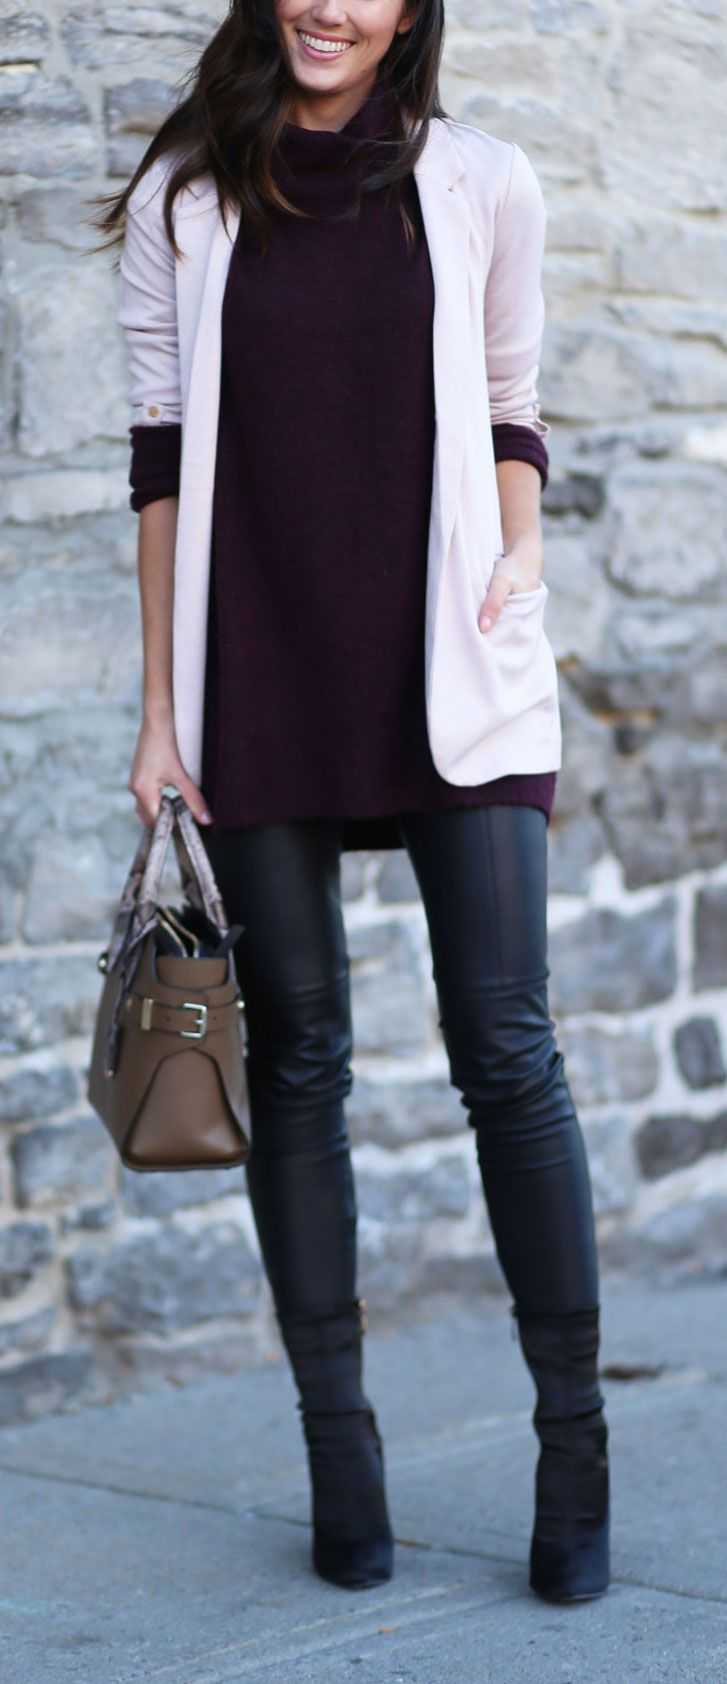 HOW TO LAYER A SWEATER: prettiest shades of pink and purple layered for fall. Sweater and blazer layers with skinny leather pants #sweaterweather #layers #fallfashion